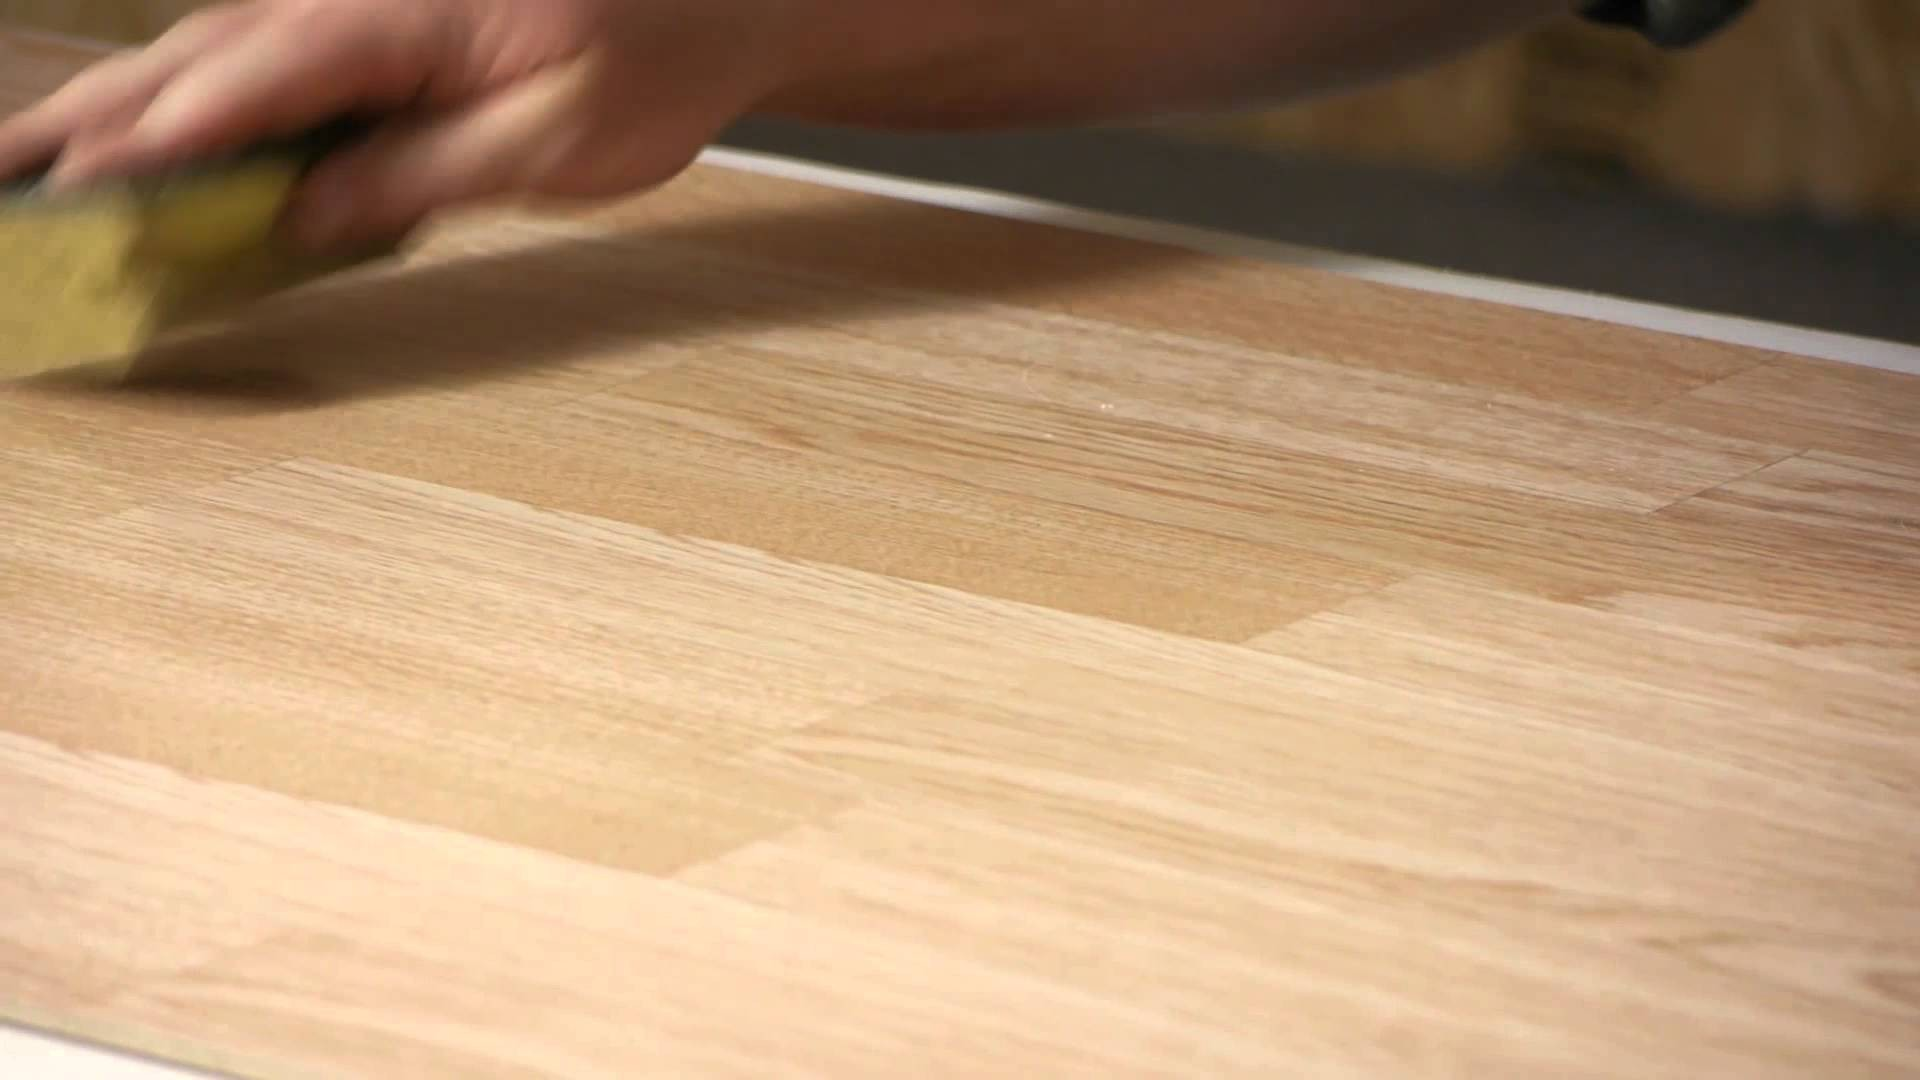 How To Clean Laminate Floors Without Streaking